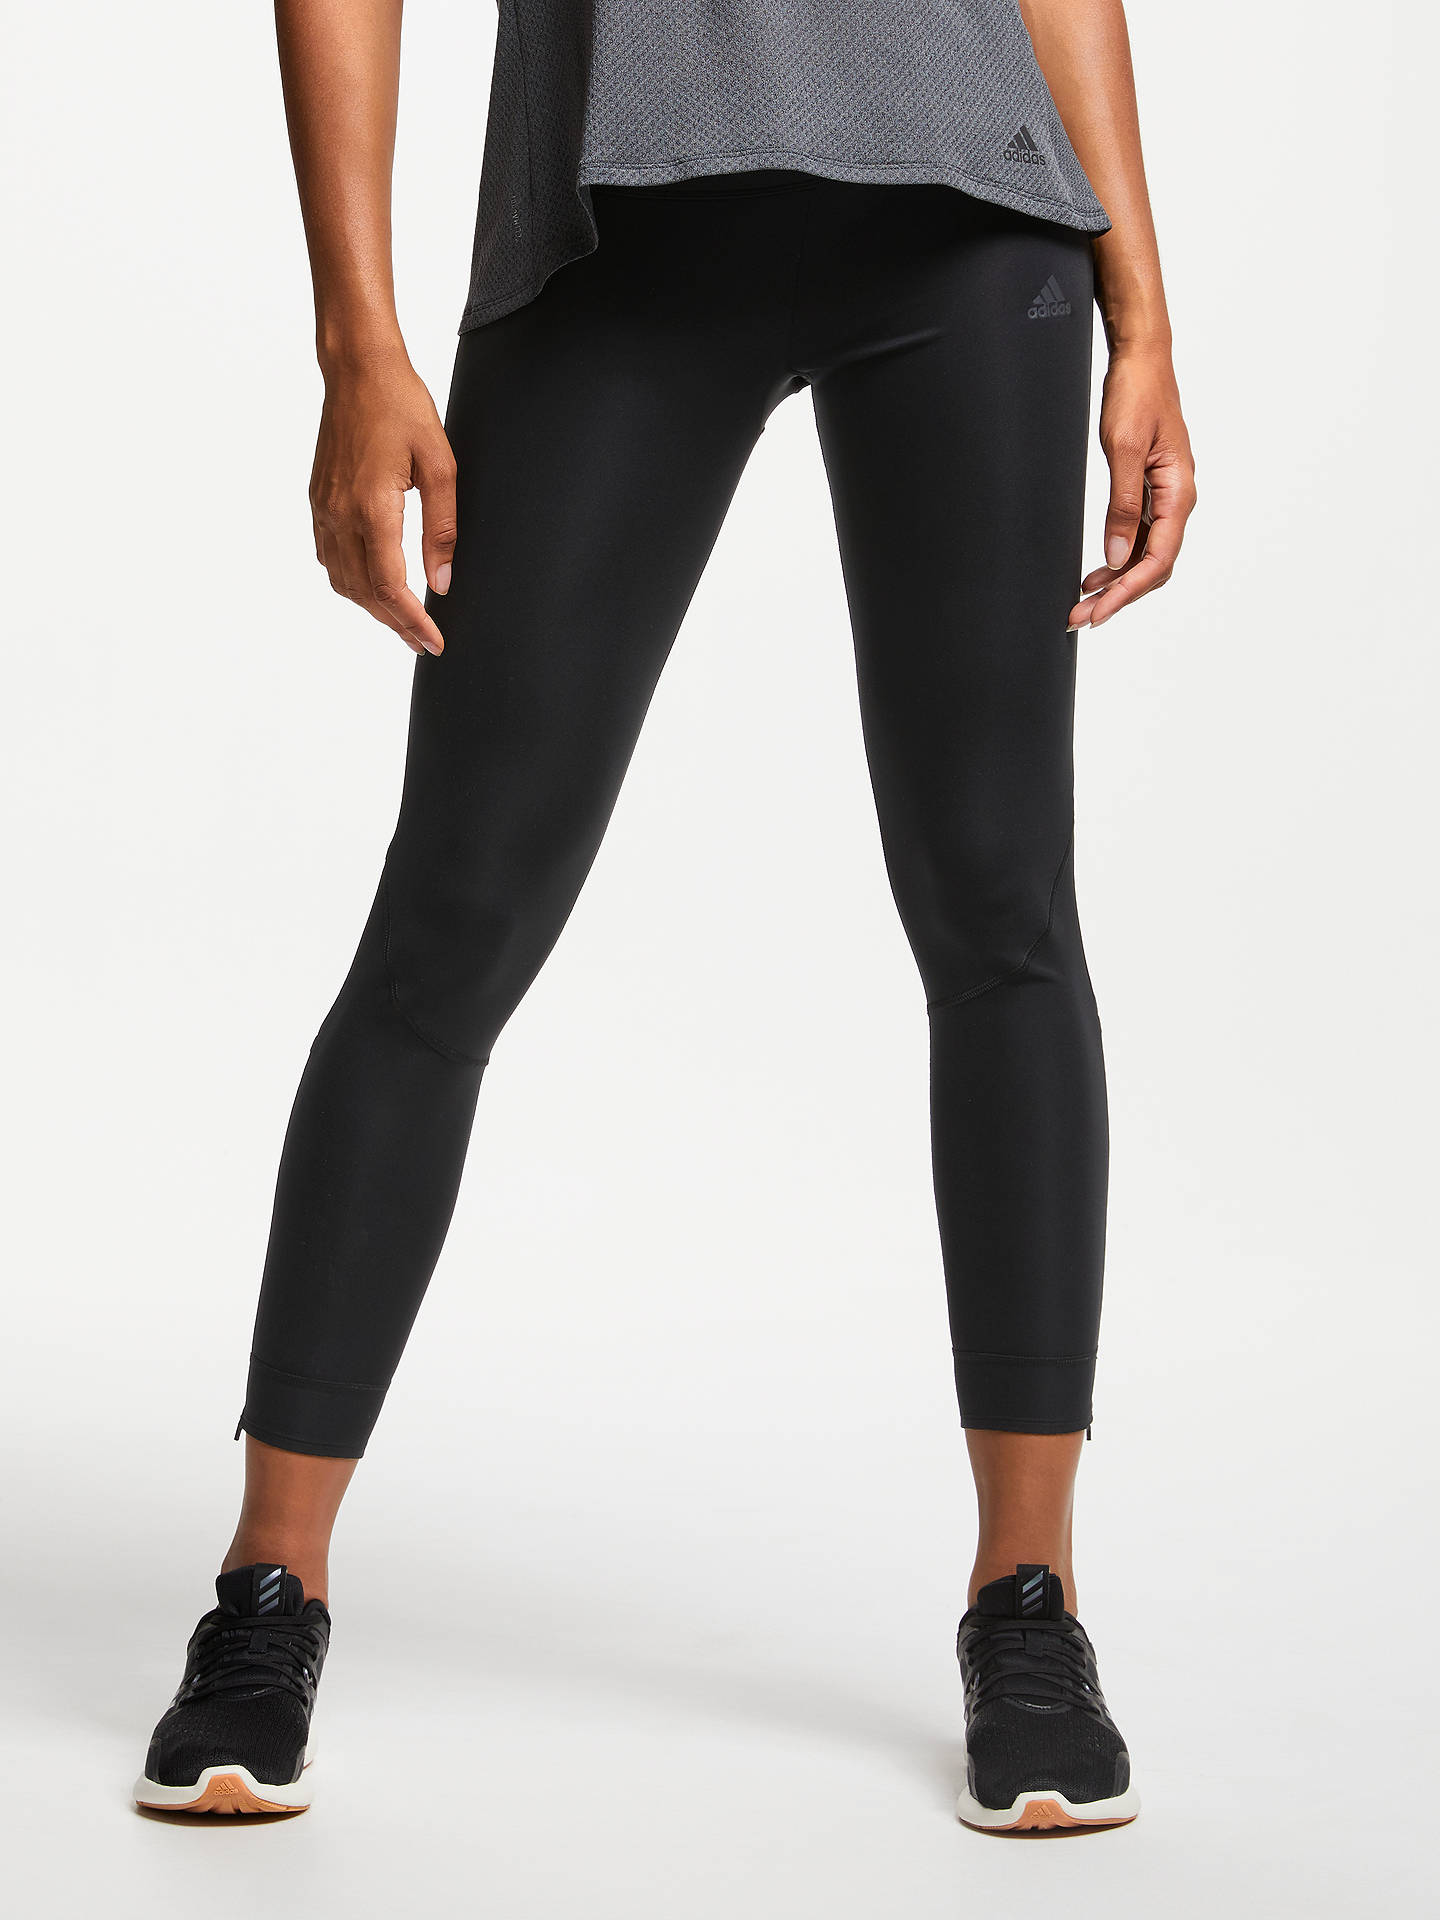 504fd9721e13 Buy adidas Own The Run Long Running Tights